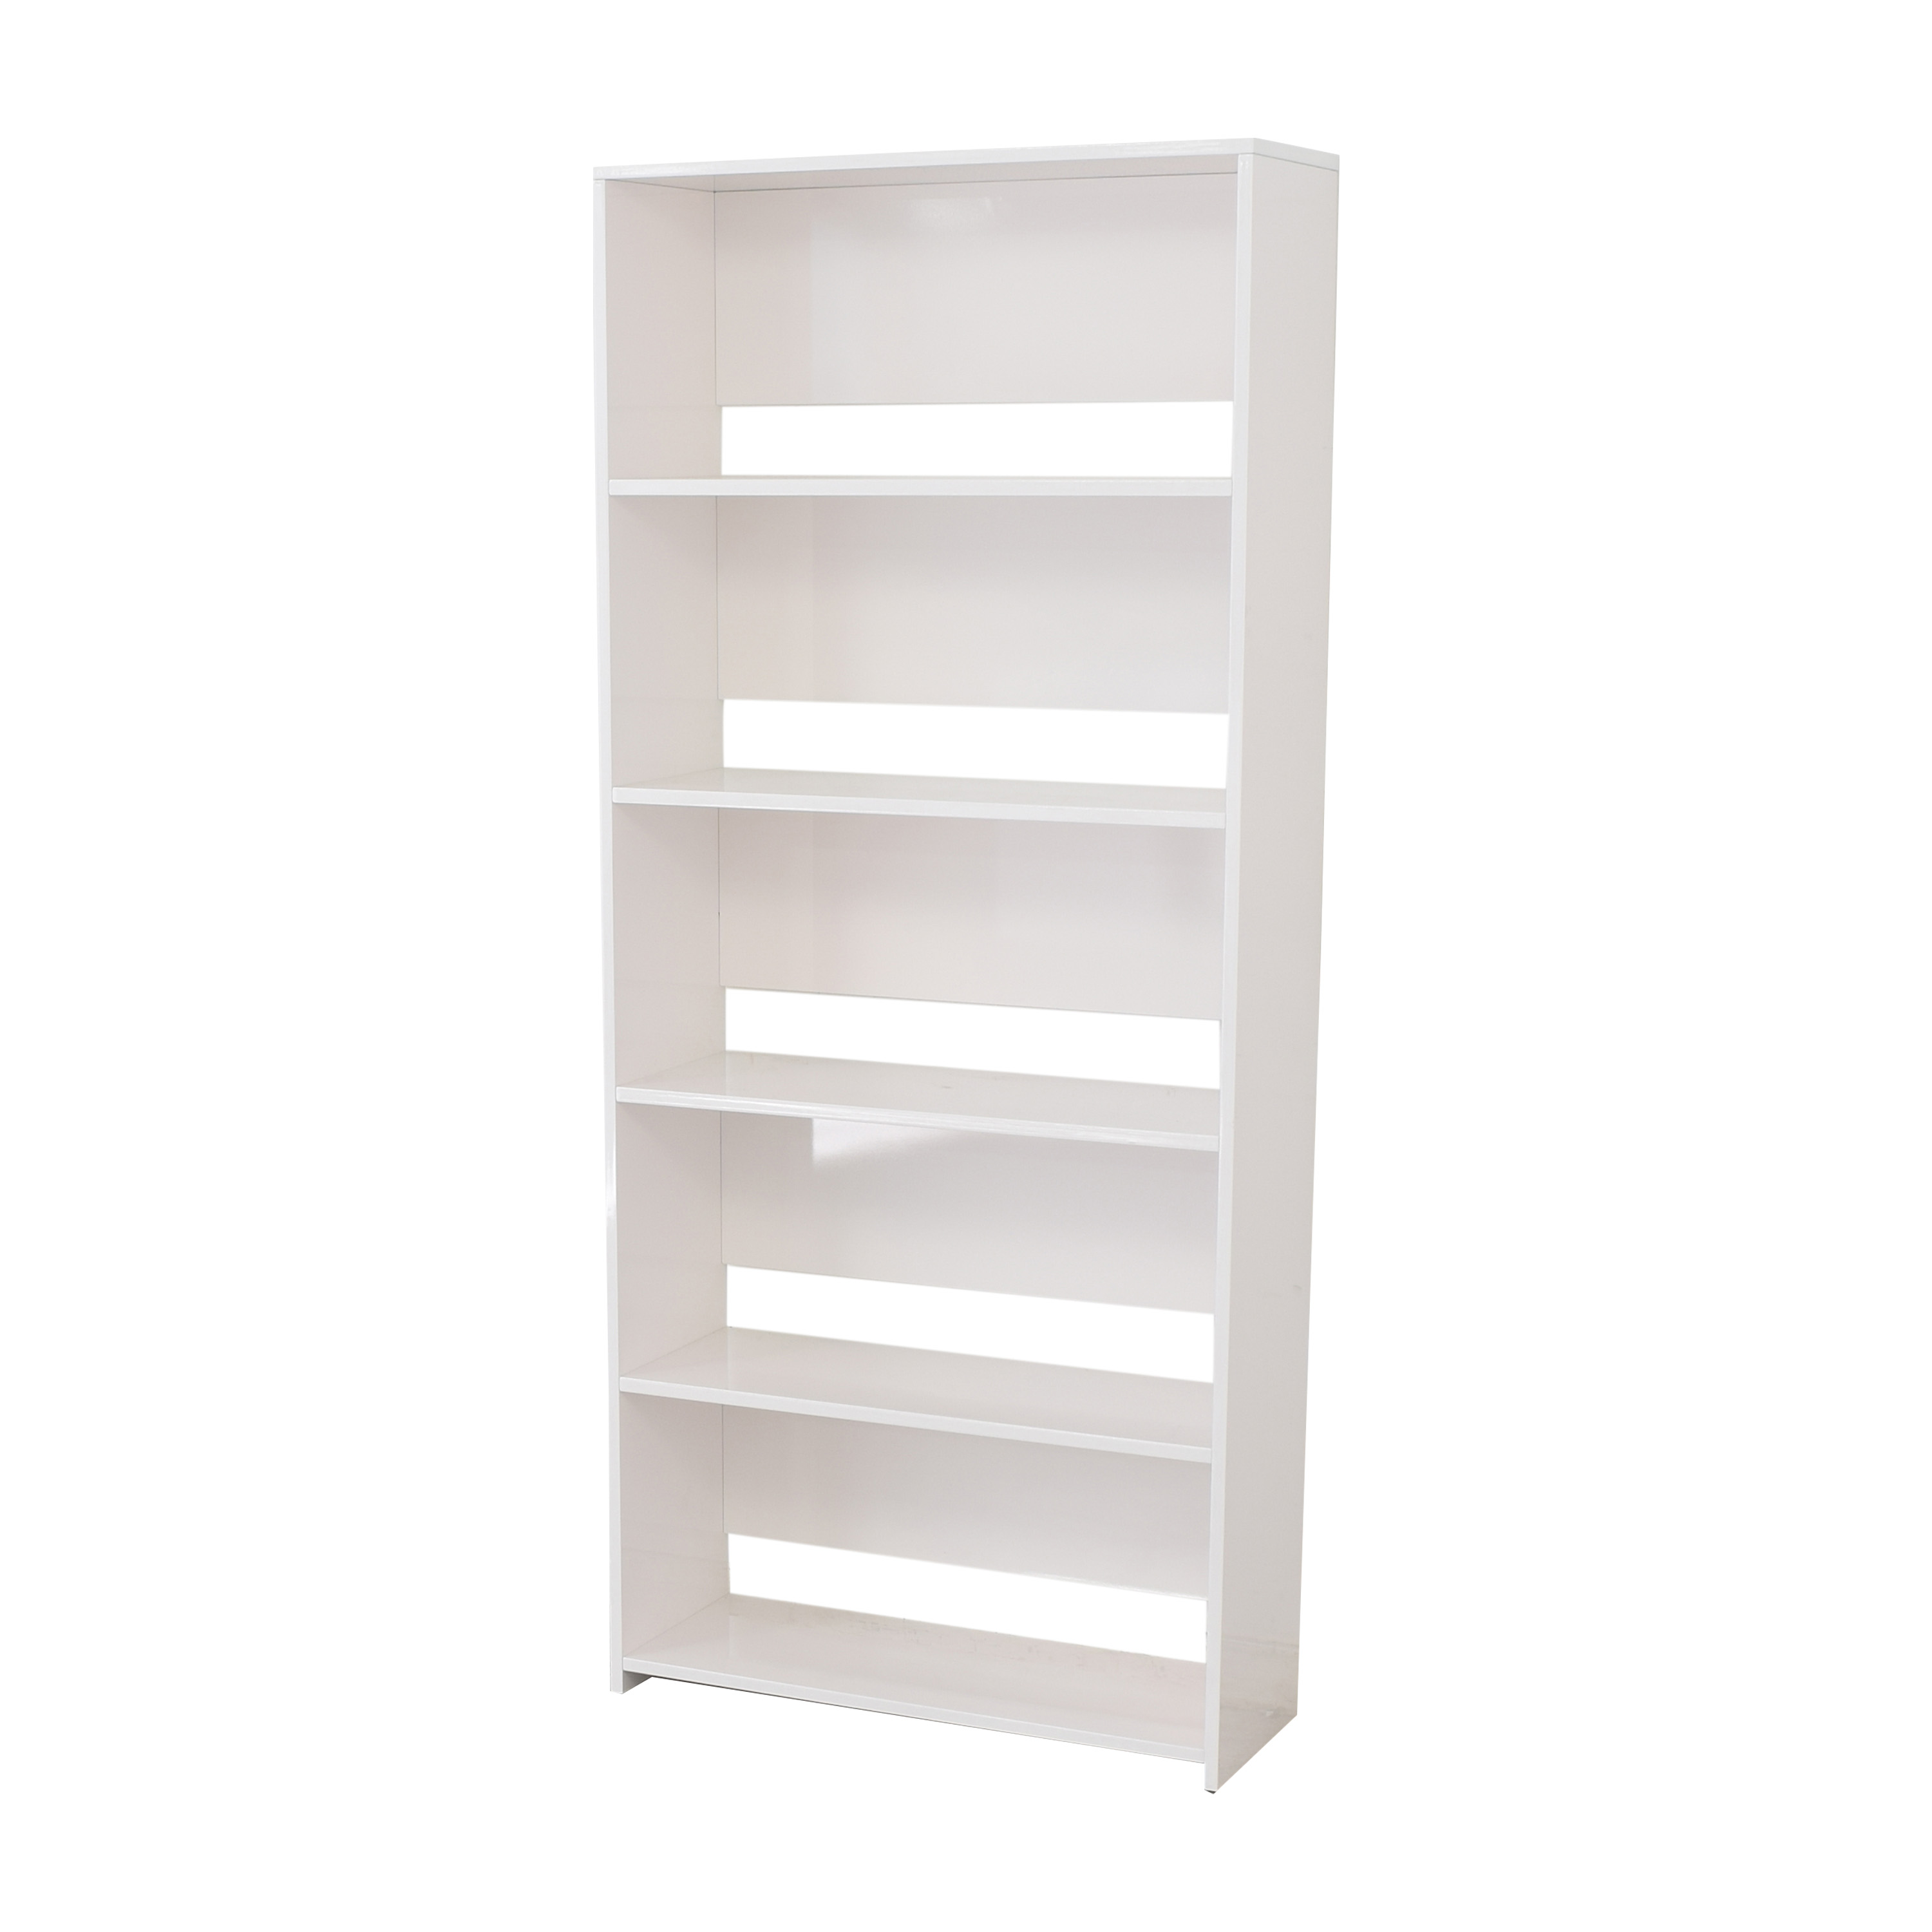 CB2 CB2 Getaway Wide Bookcase Bookcases & Shelving